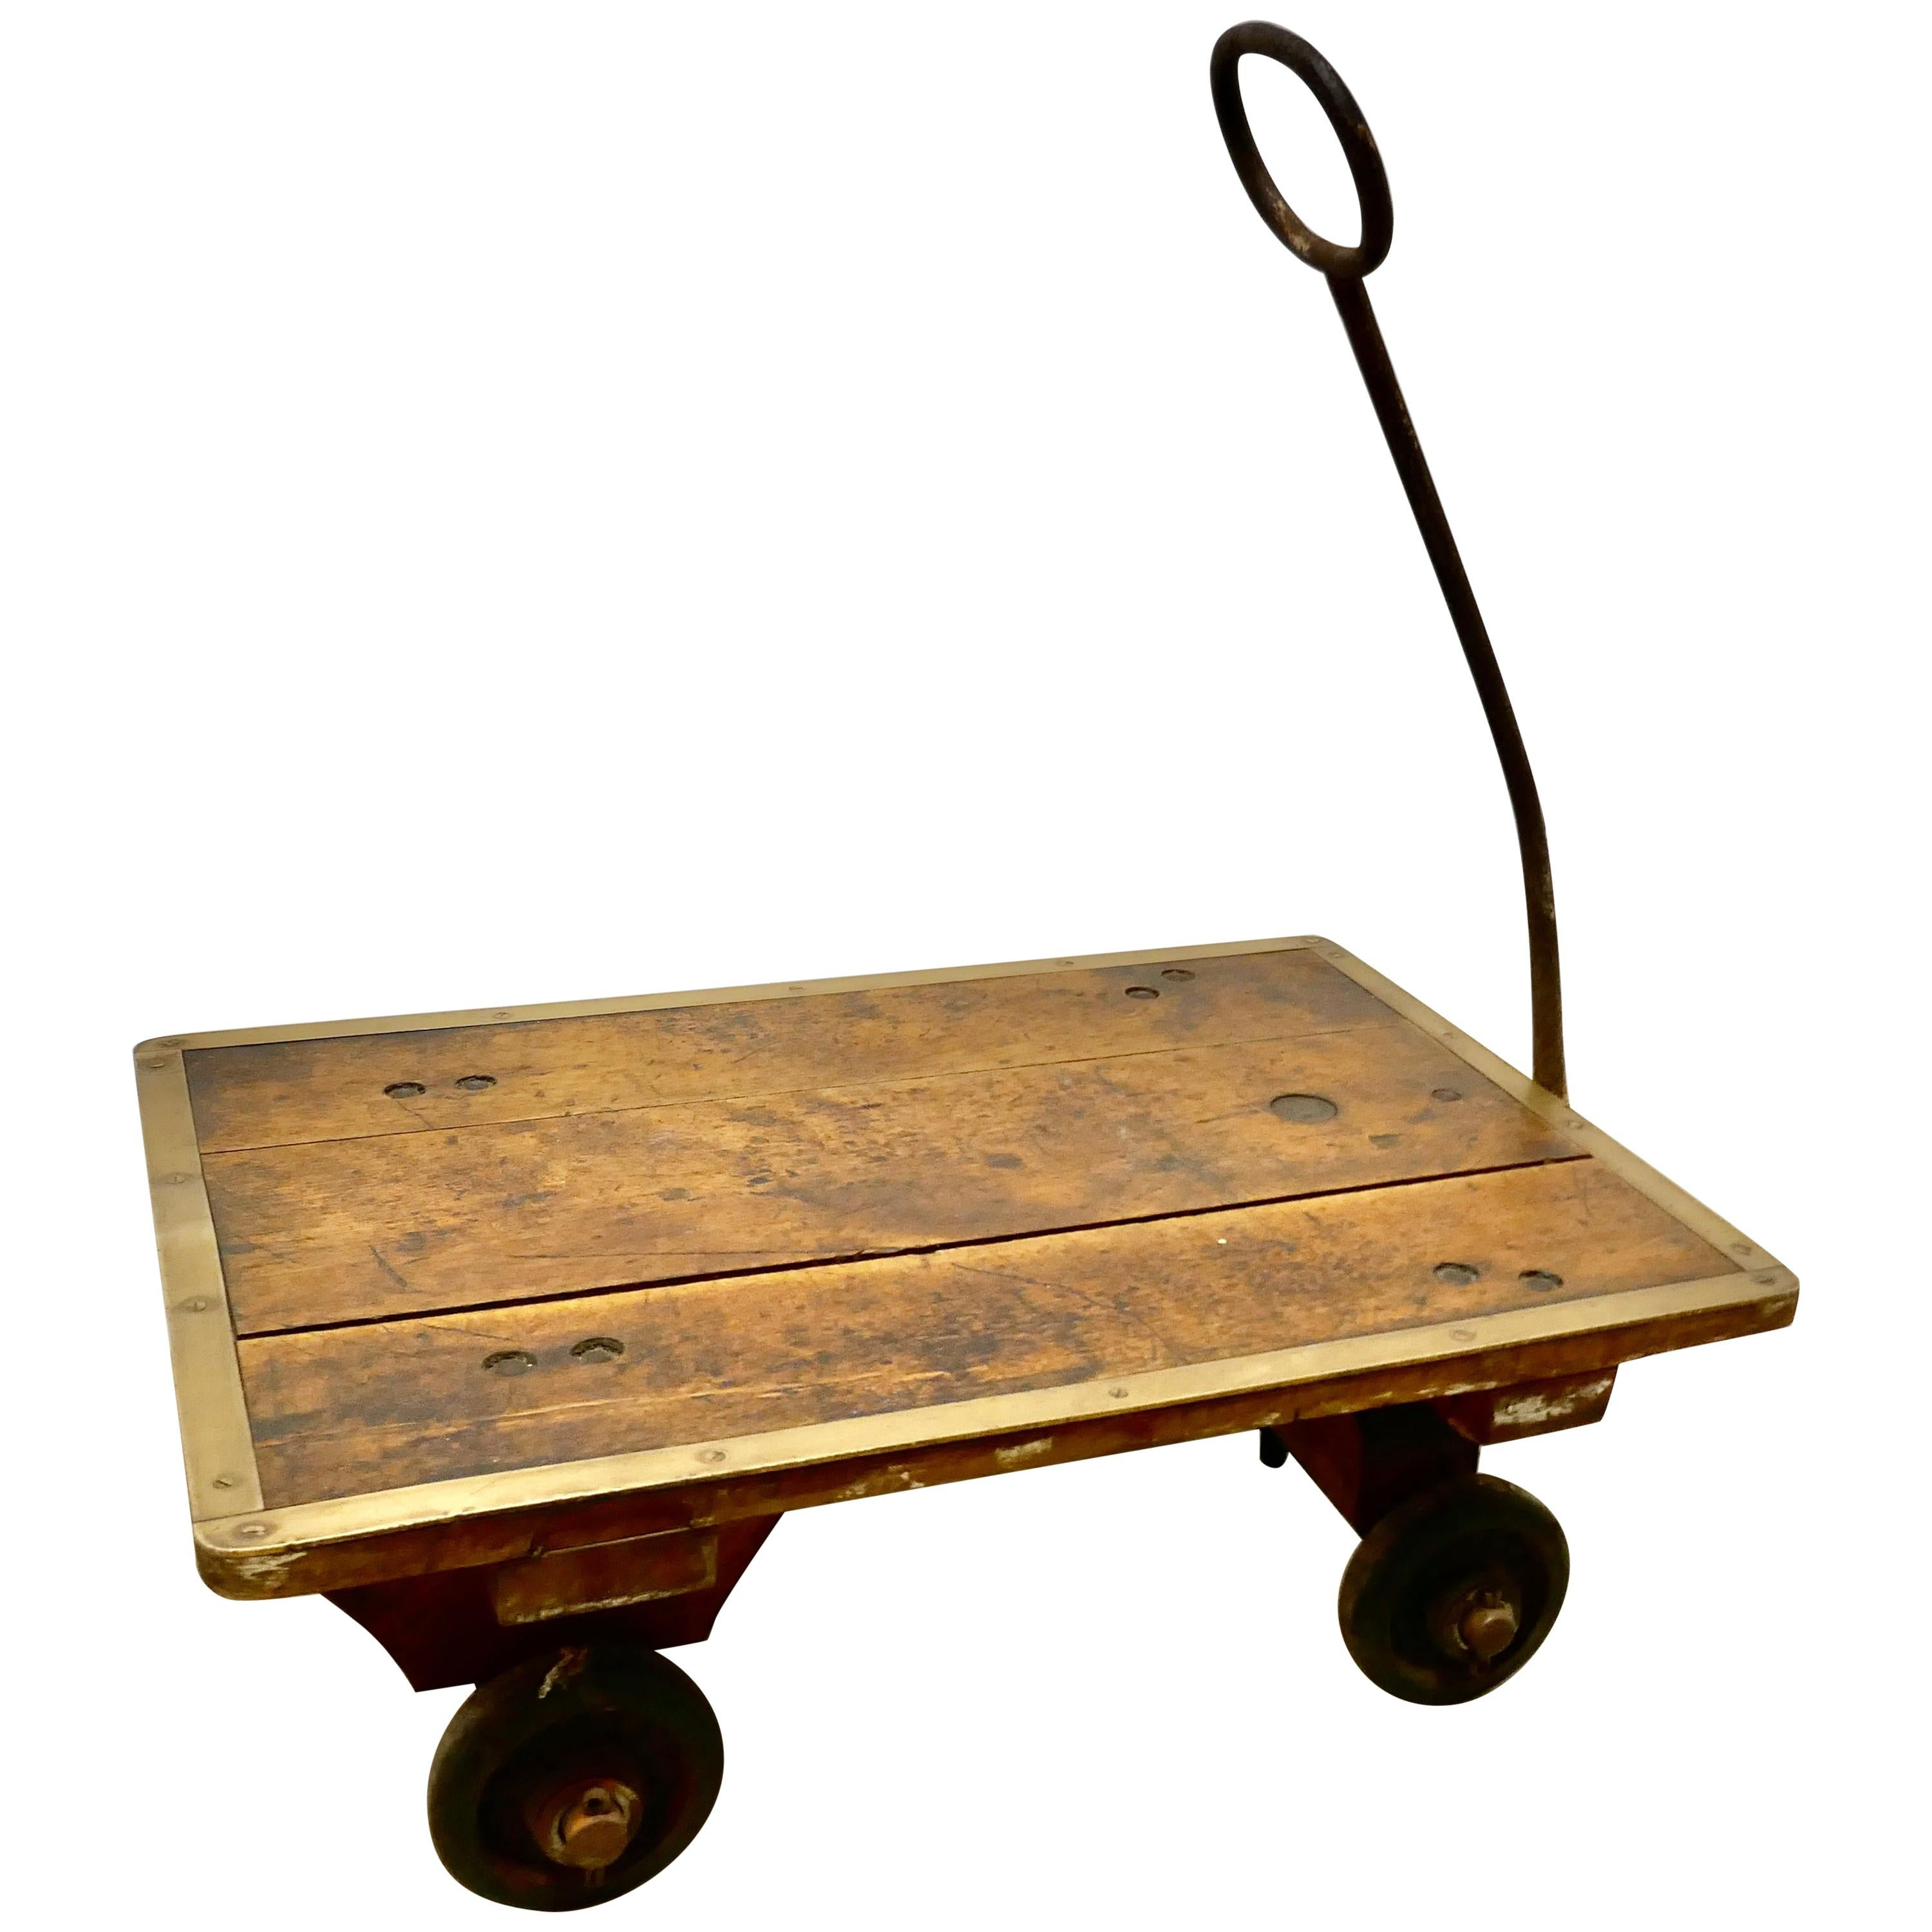 Industrial Bullion and Coin, Bank Cart Trolley by Slingsby